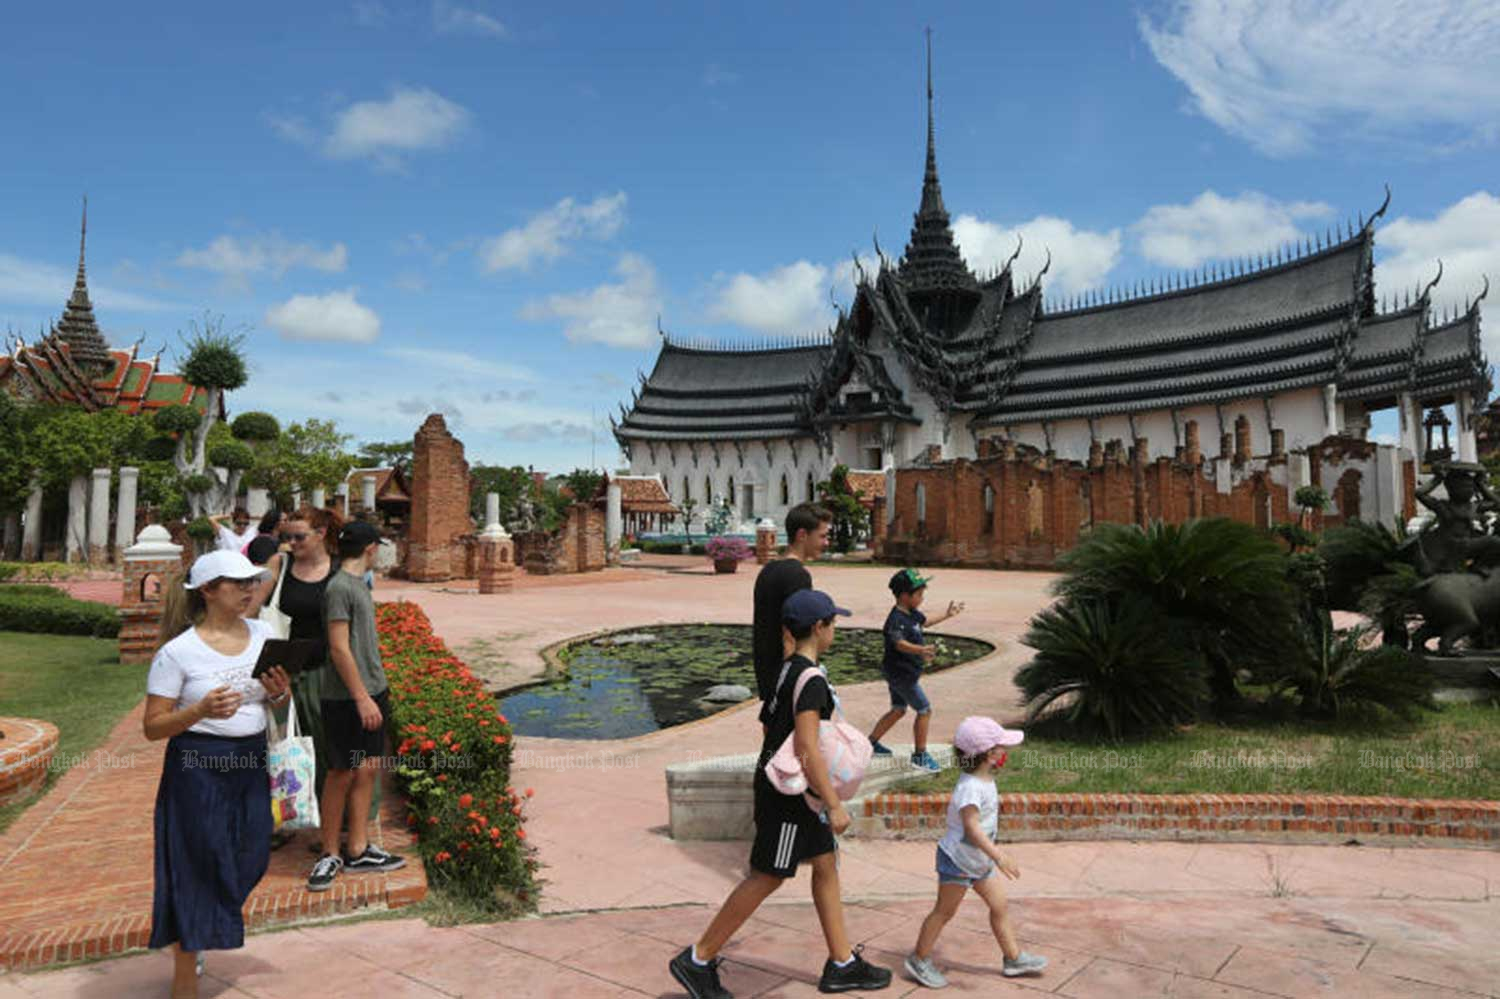 Visitors enjoy Muang Boran in Samut Prakan, after it reopened to tourists from June 1 as the government eased coronavirus lockdown restrictions. (Photo: Wichan Charoenkiatpakul)